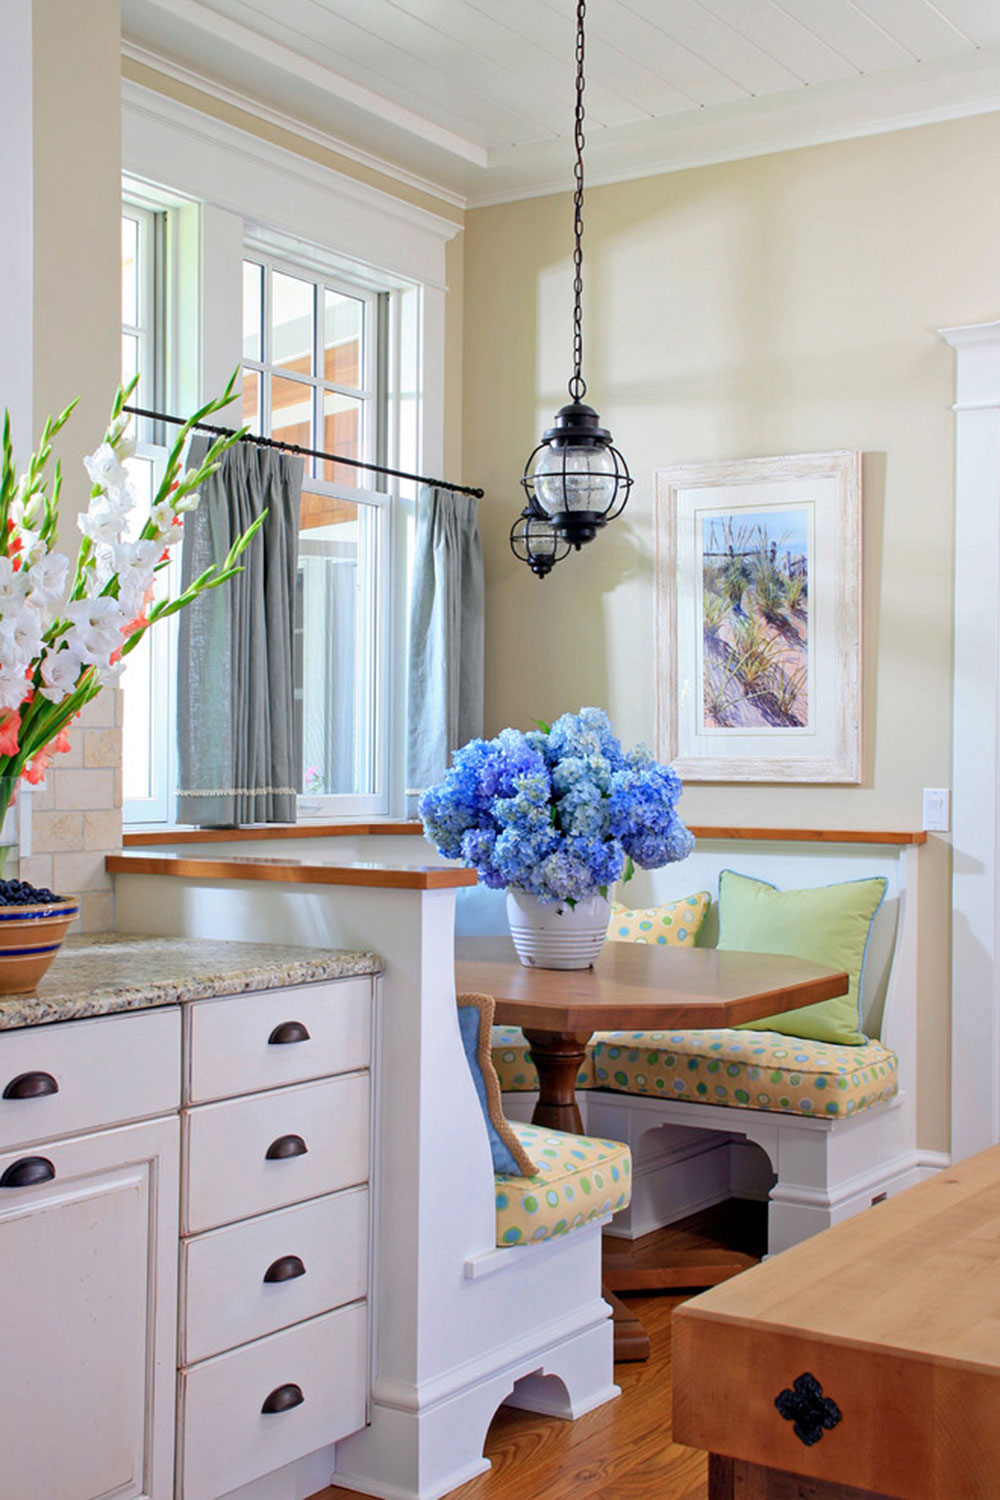 Breakfast-Nook-Design-Ideas-for-Awesome-Mornings13 Breakfast Nook-Design-Ideas for Awesome Mornings